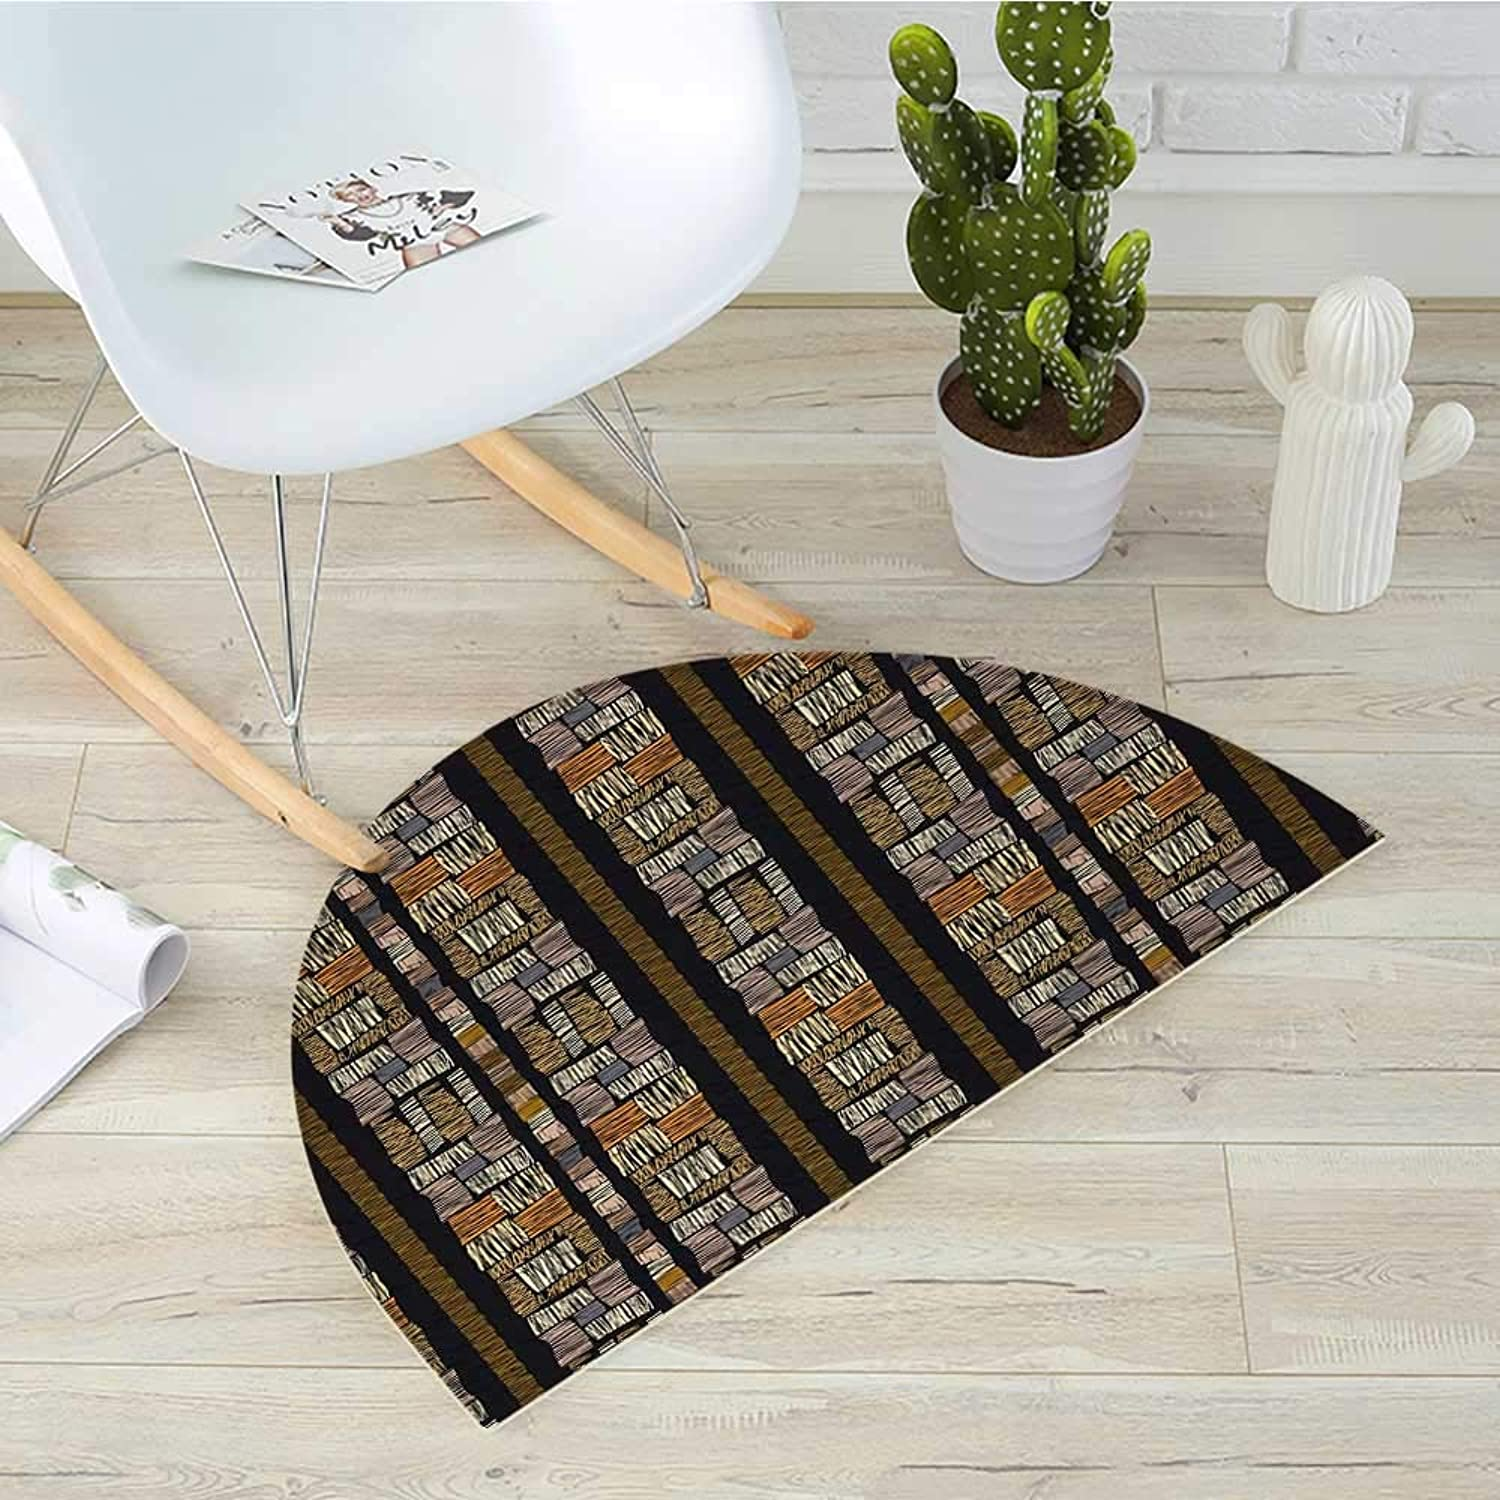 Zambia Semicircular CushionAuthentic Bohemian African Civilization Striped Grunge Fashion Culture Artsy Pattern Entry Door Mat H 39.3  xD 59  Multicolor